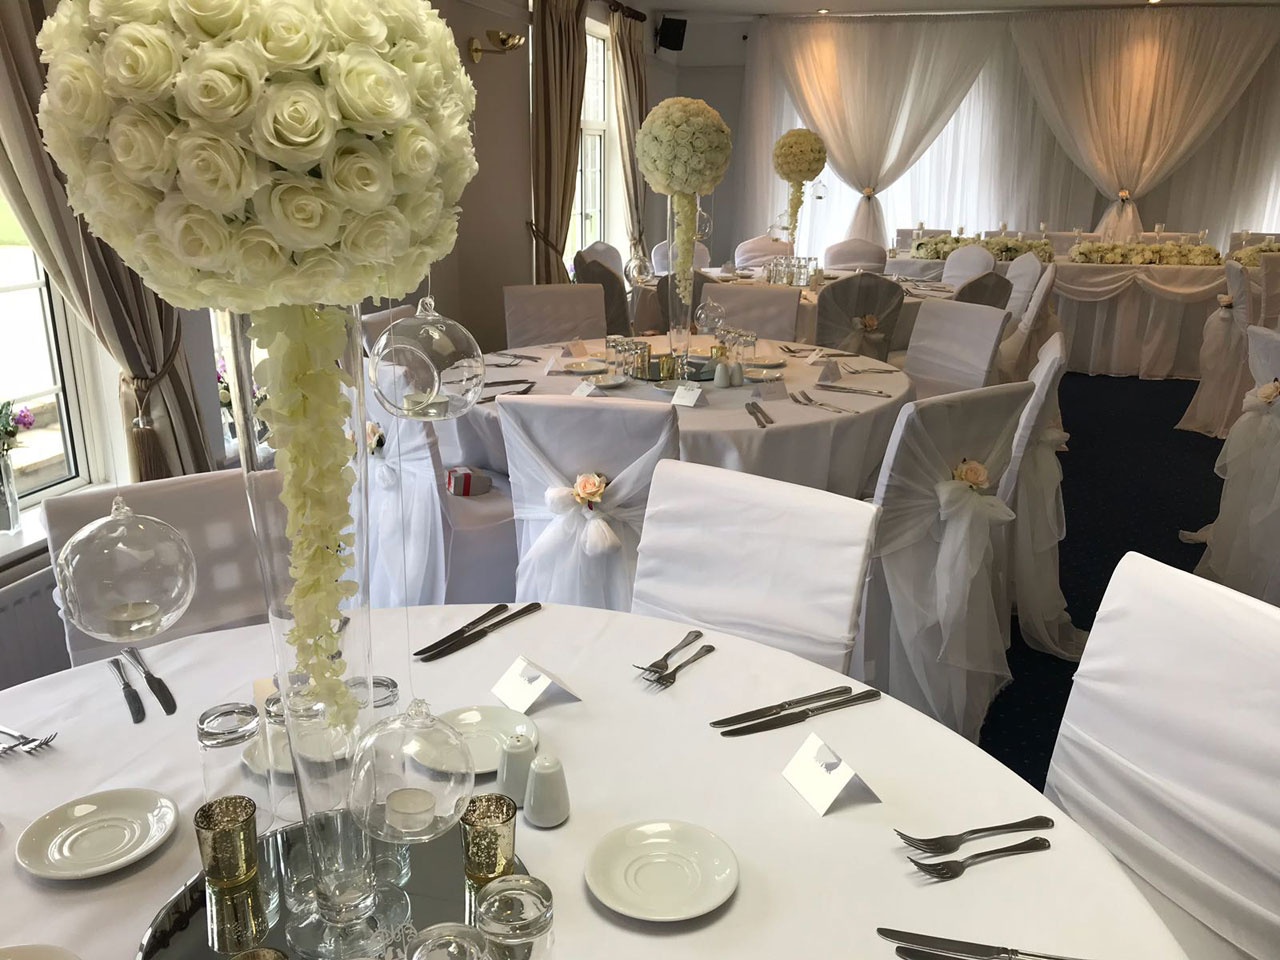 Muswell Hill Golf Club - ivory rose ball tall vase centrepiece